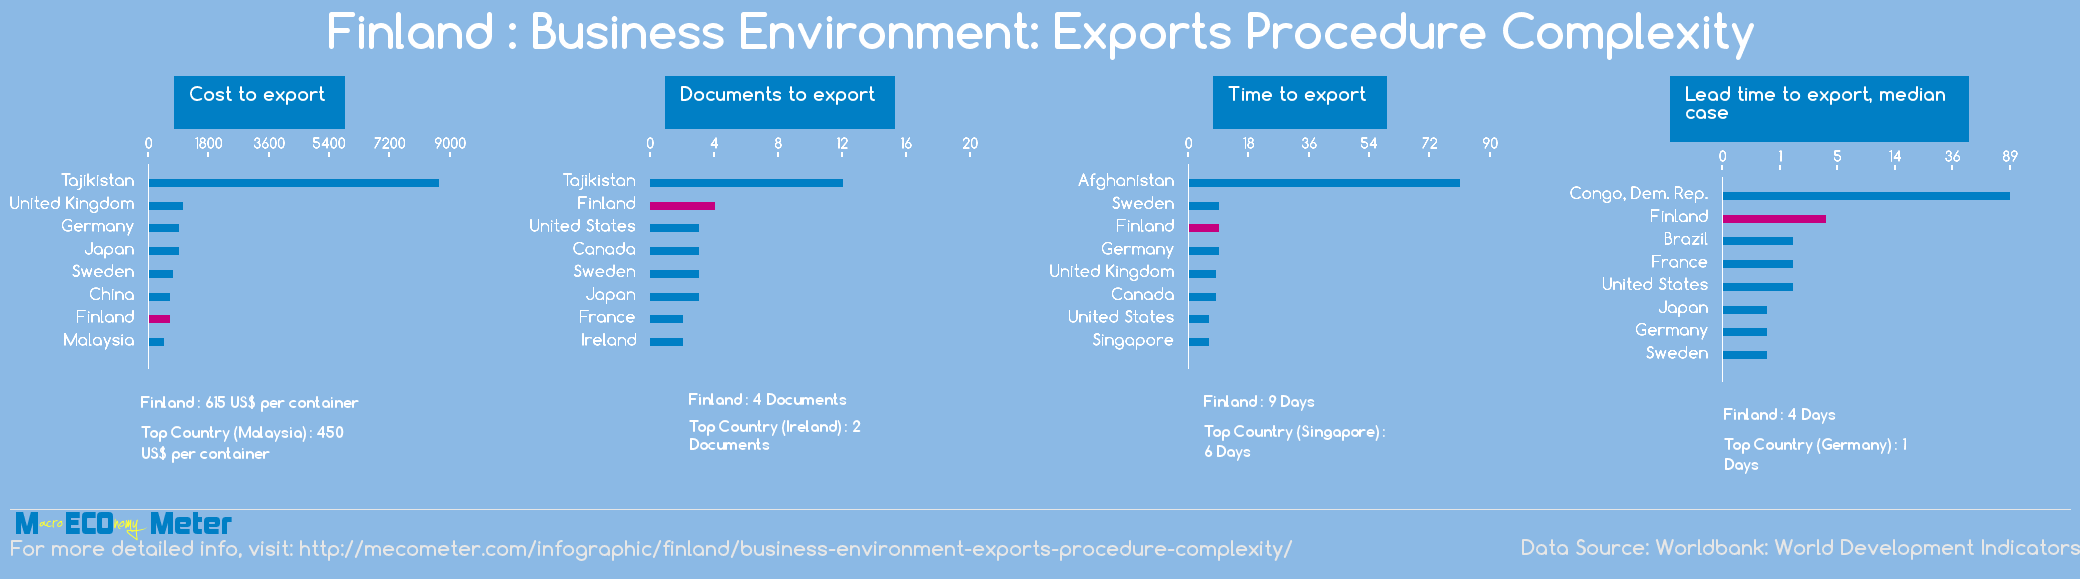 Finland : Business Environment: Exports Procedure Complexity